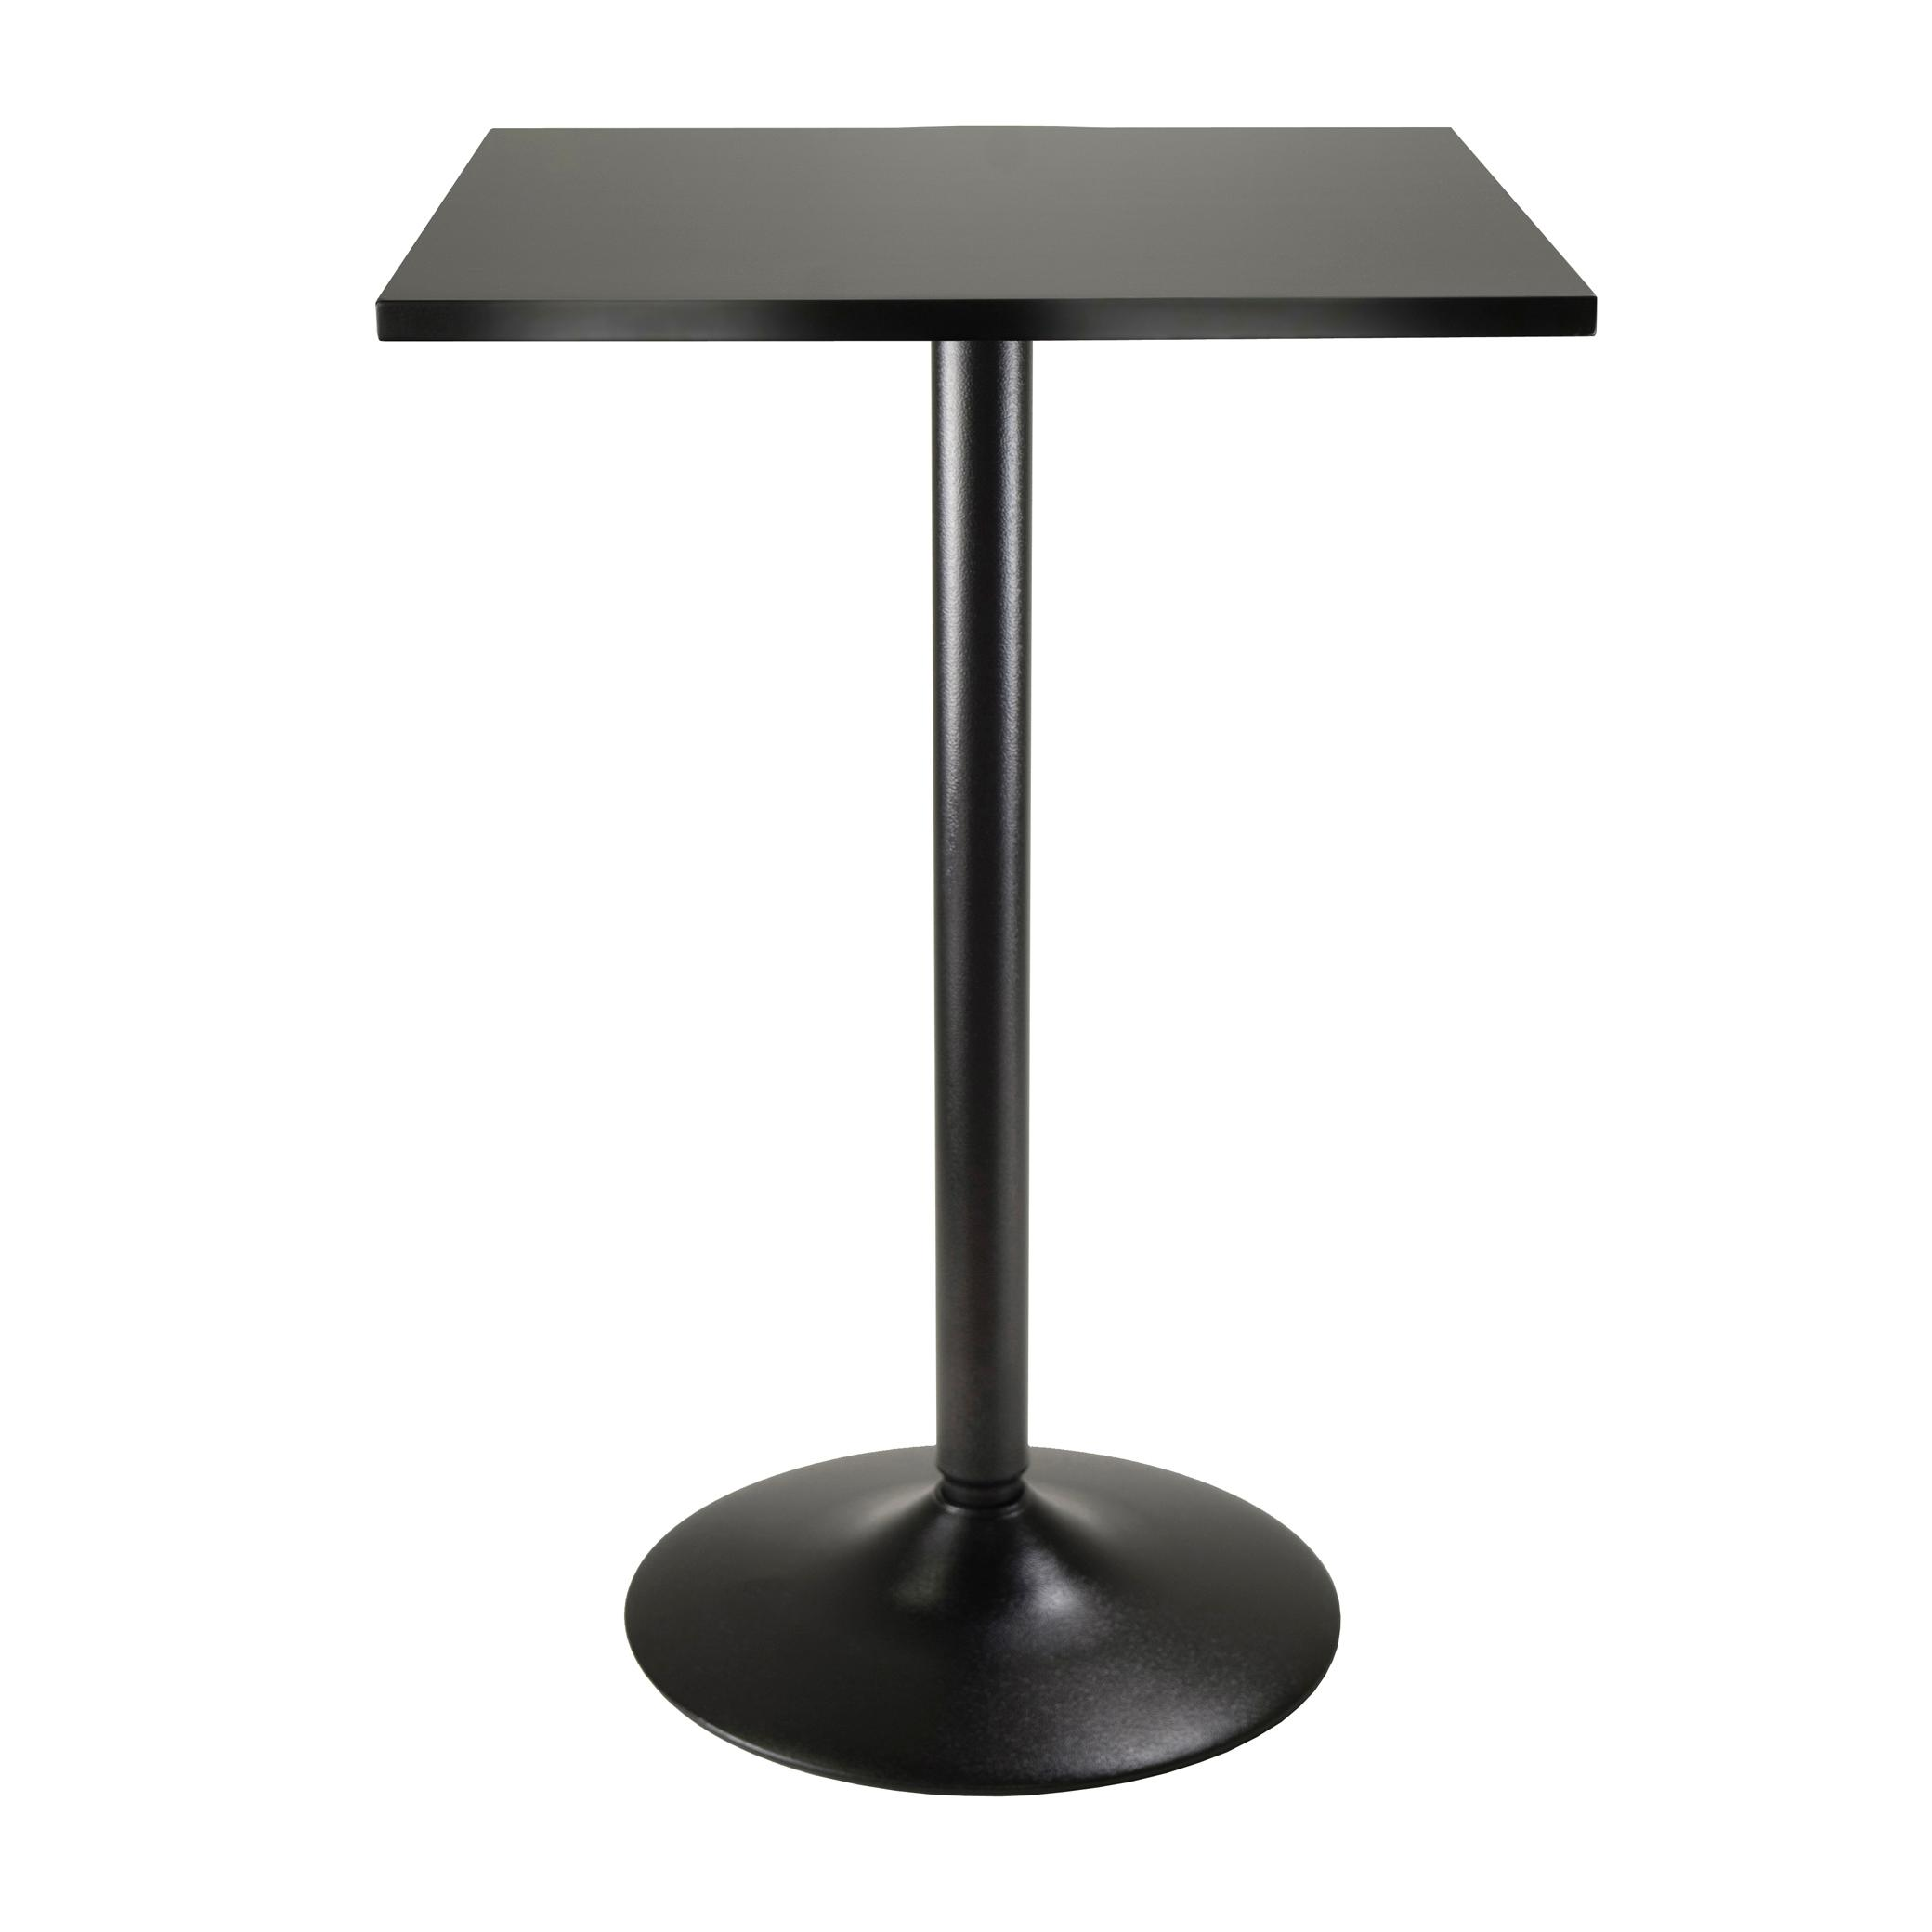 Black Square Kitchen Table: Winsome Wood Obsidian High Table Square Black MDF Top With